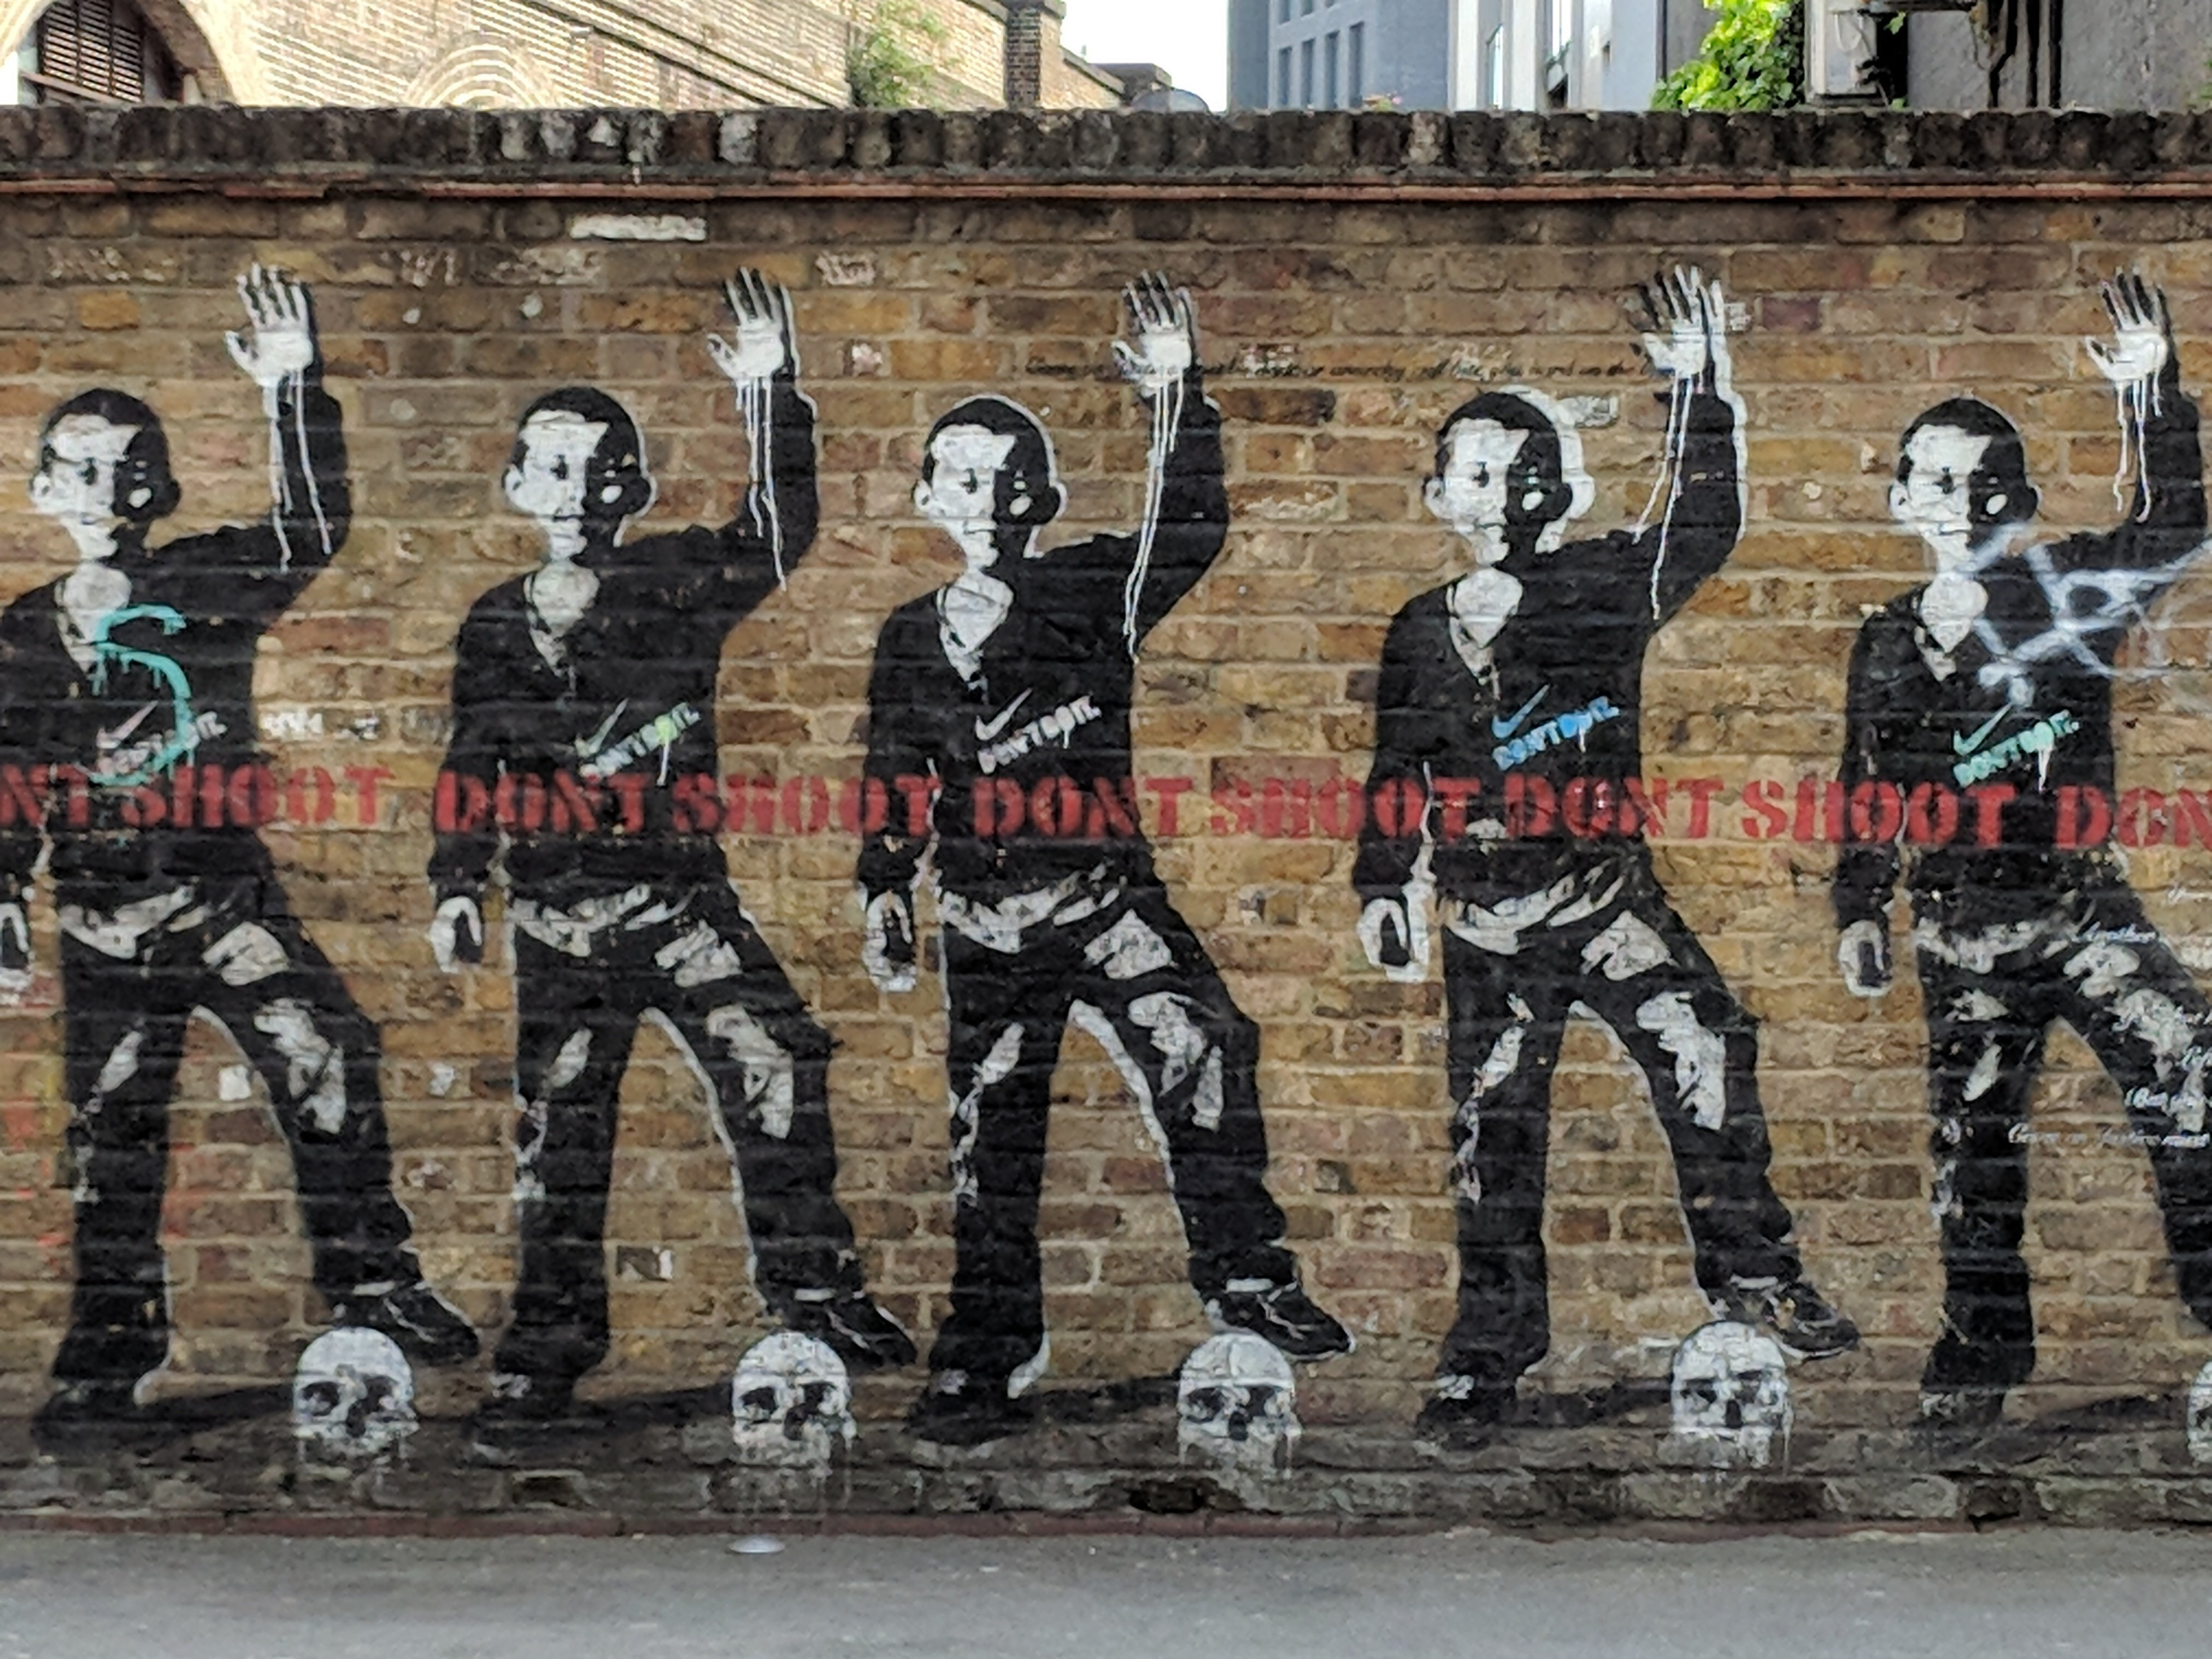 CAPAStudyAbroad_London_Summer2018_From Alice Ding - Street Art in Shoreditch on our Walking Tour